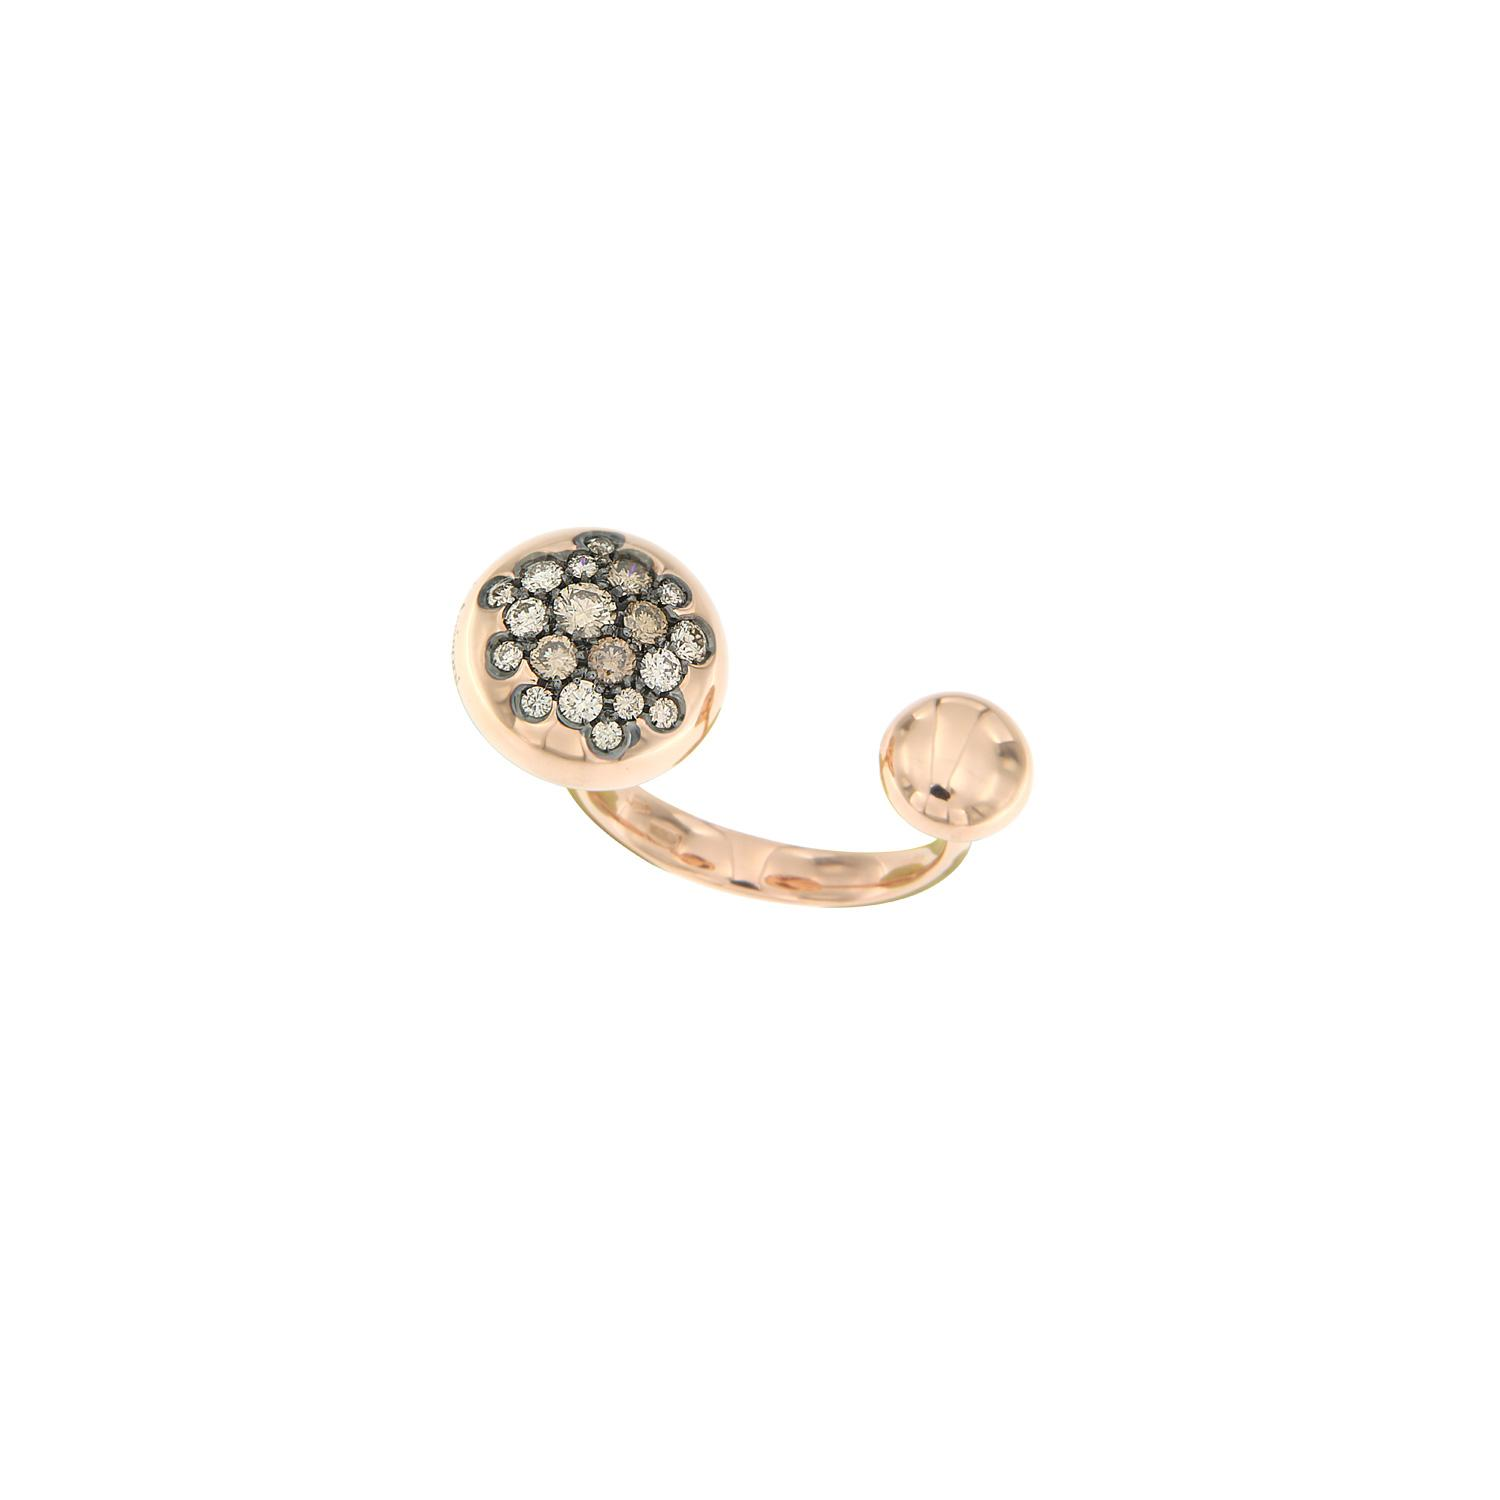 Anello Glamour borchie in oro rosa e diamanti brown